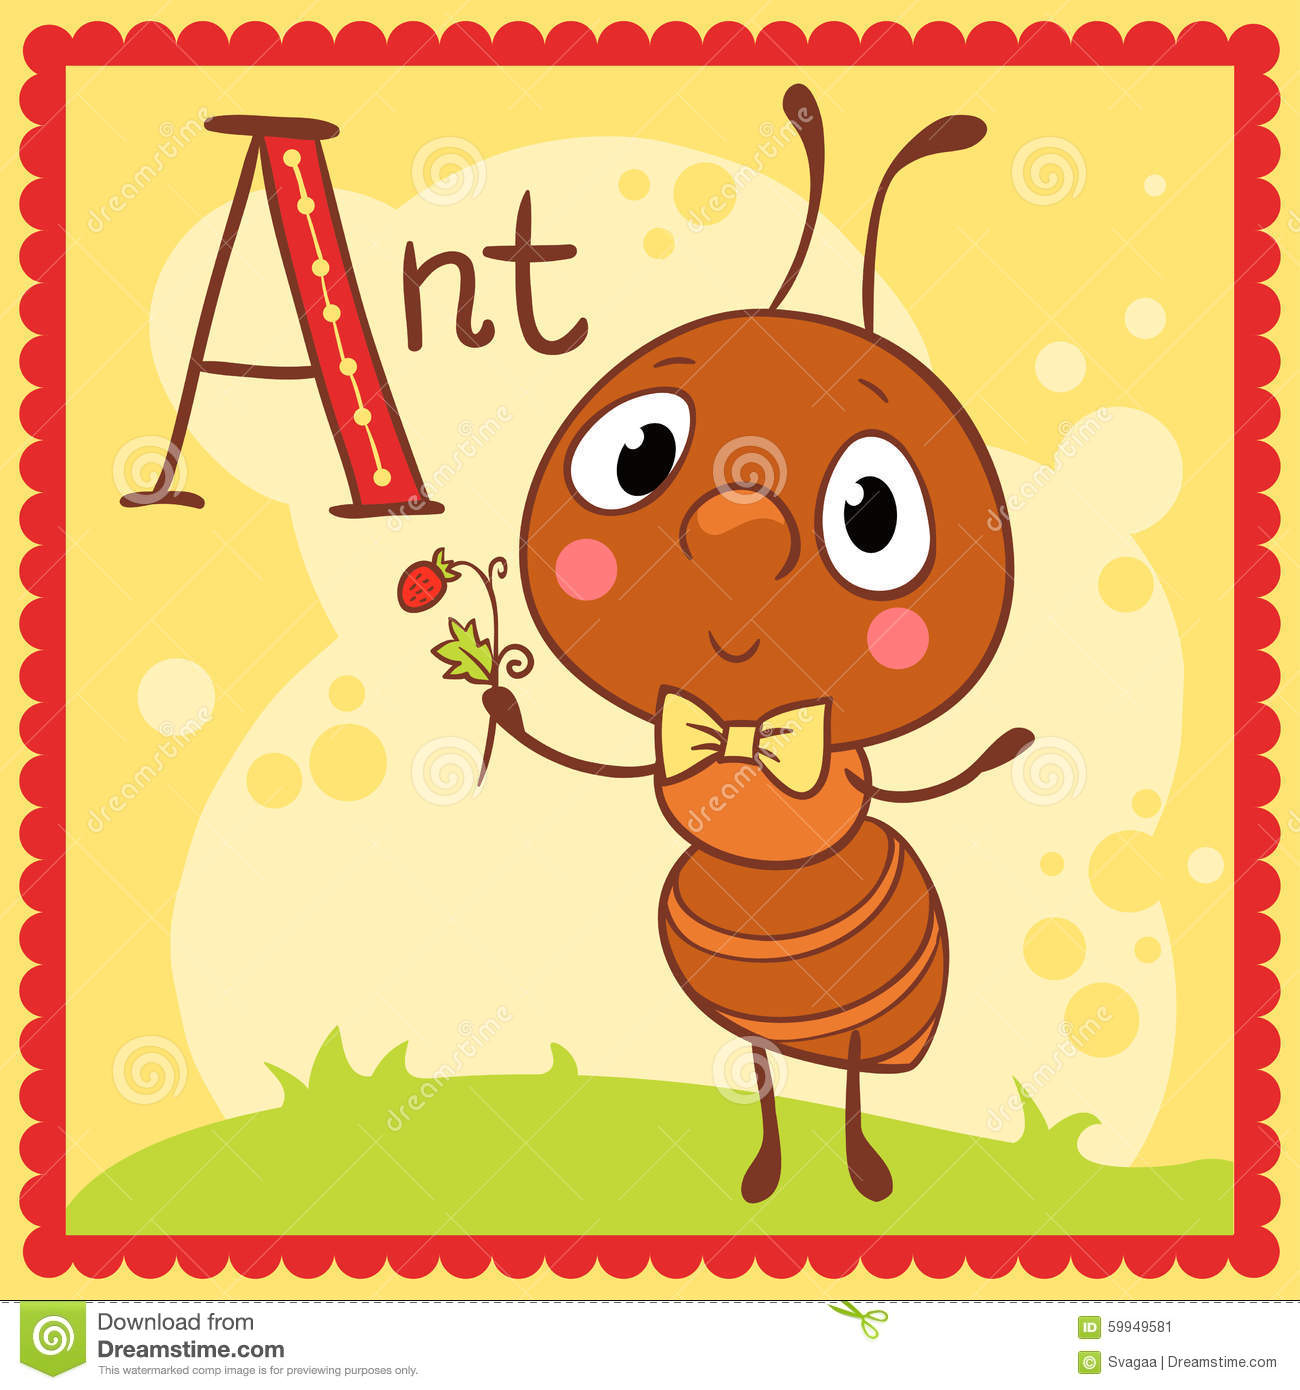 Illustrated Alphabet Letter A And Ant Stock Vector